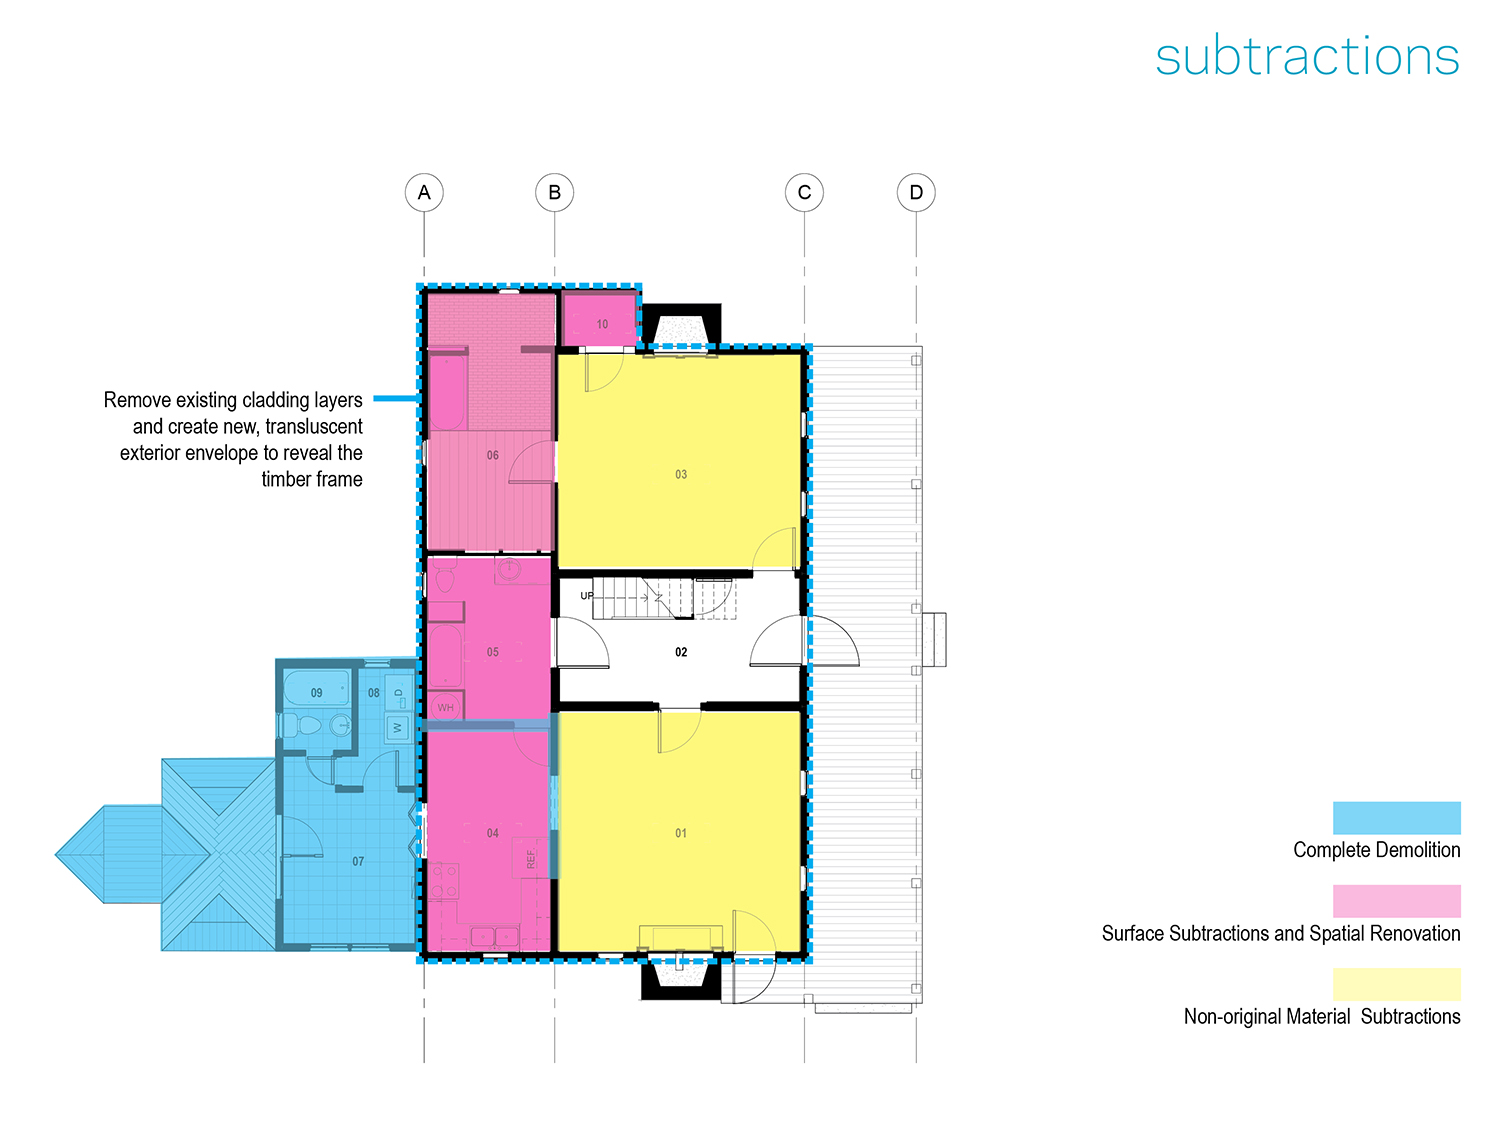 Demolition and subtraction plan for farmhouse renovation  mcdowellespinosa architects